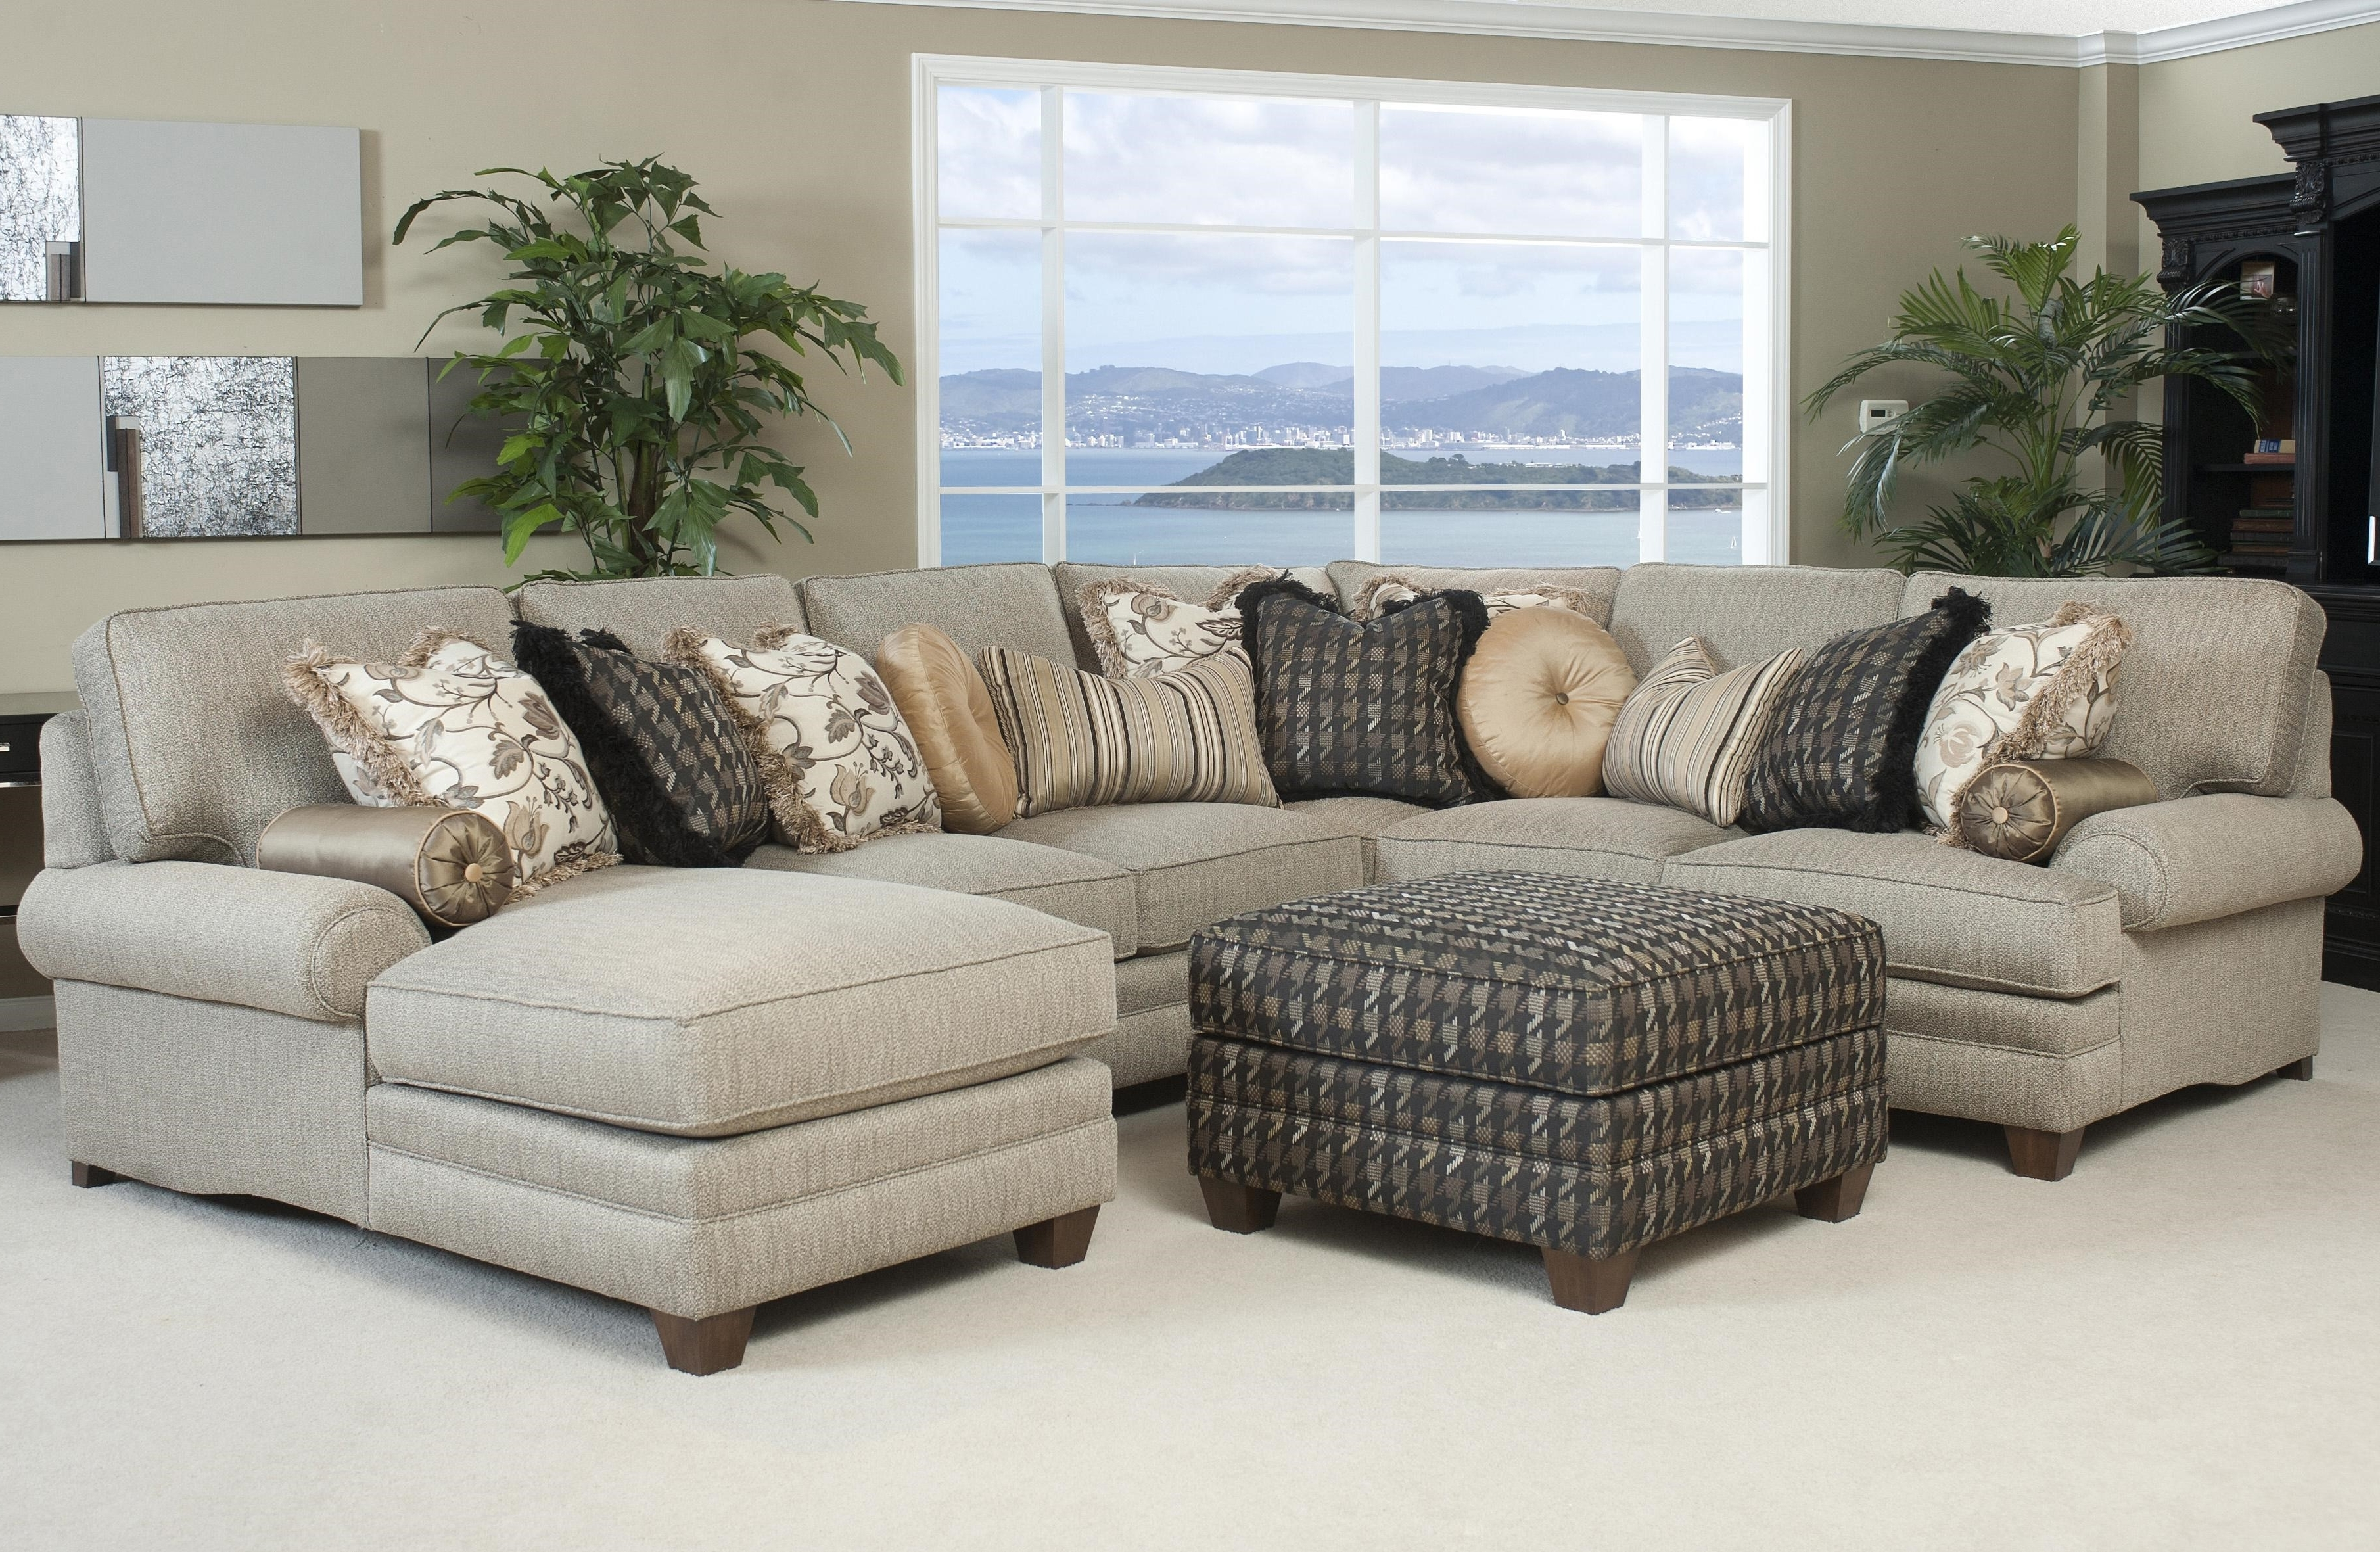 Kingston Sectional Sofas For Trendy Furniture : Unique Most Comfortable Sectional Couches 19 Sofa (View 2 of 15)